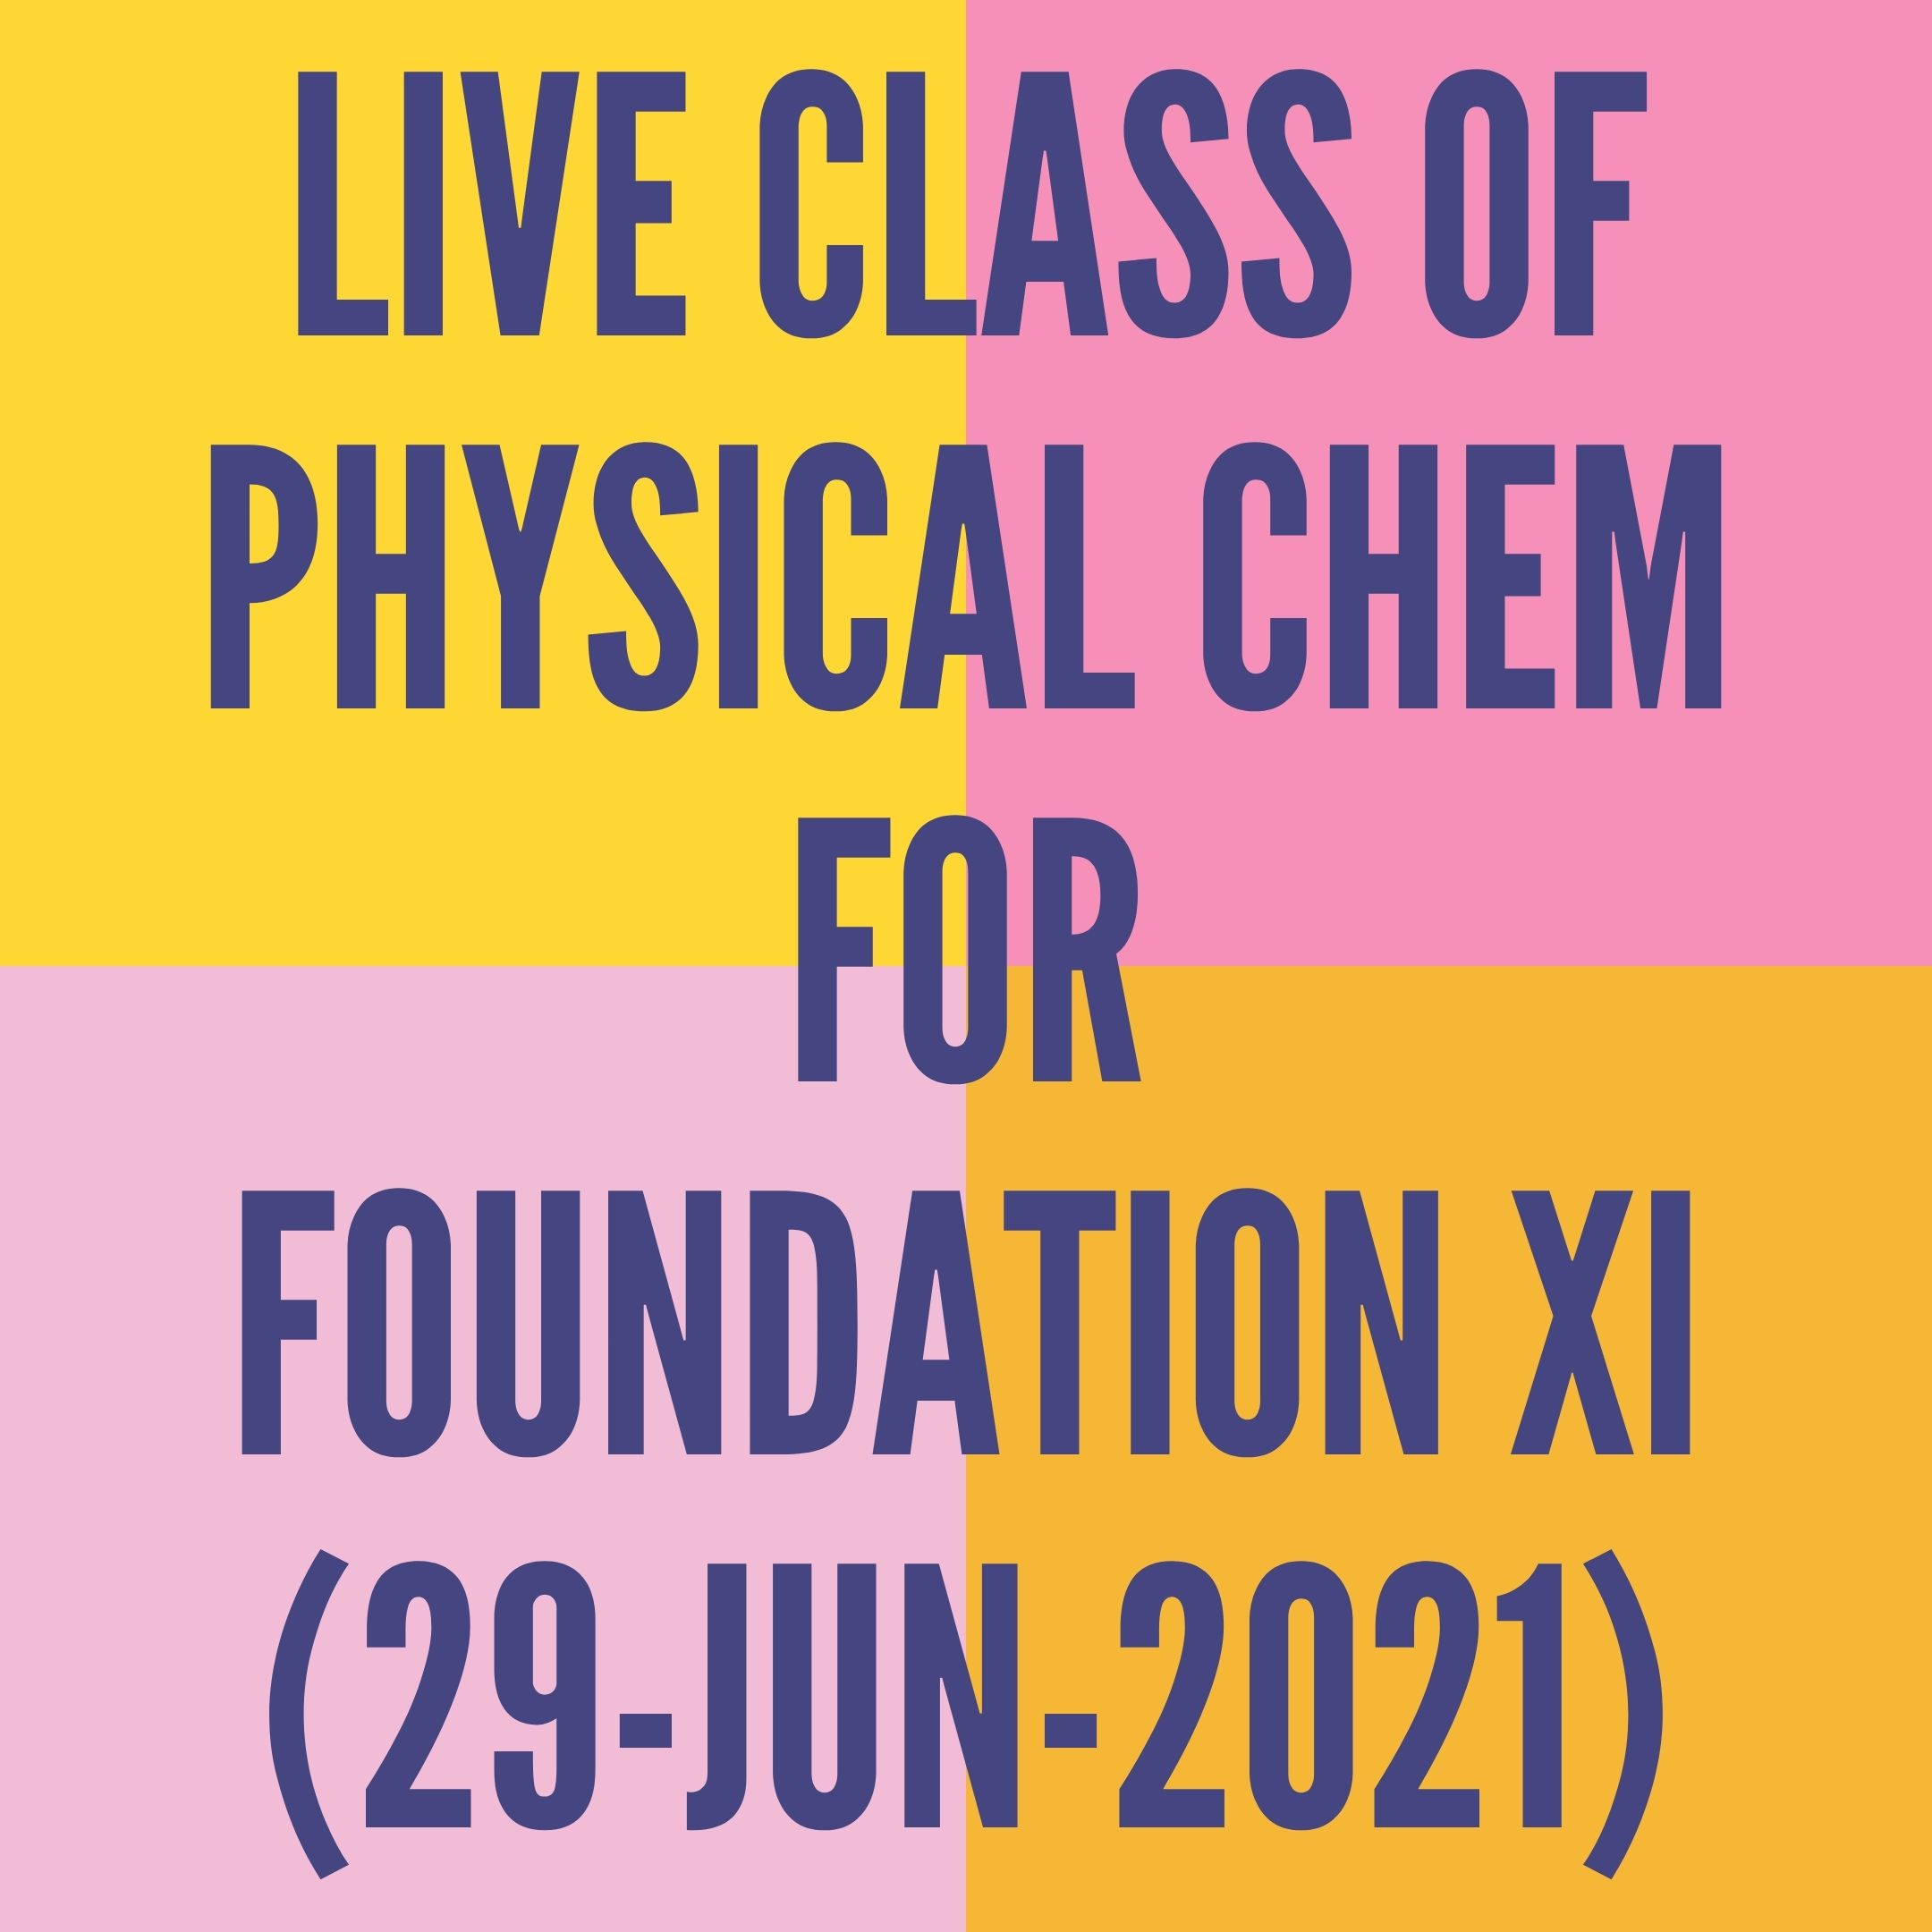 LIVE CLASS OF PHYSICAL CHEMISTRY FOR FOUNDATION XI (29-JUN-2021) CONCENTRATION OF SOLUTIONS